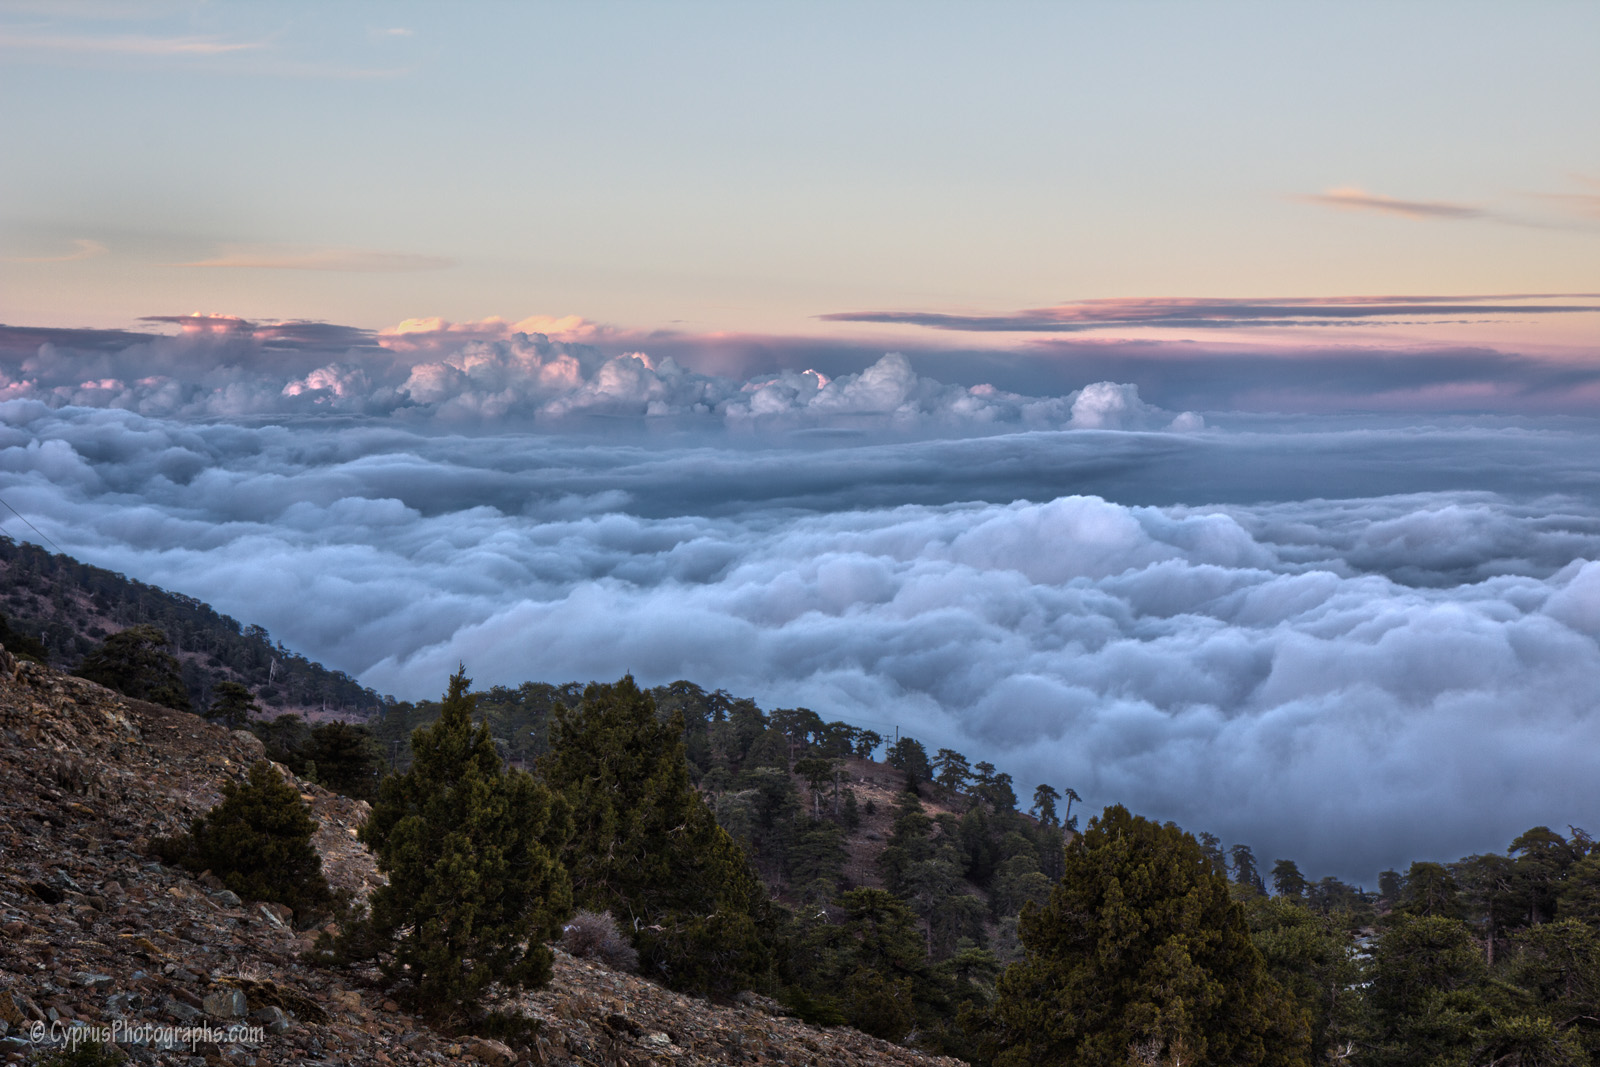 Over the clouds, Troodos